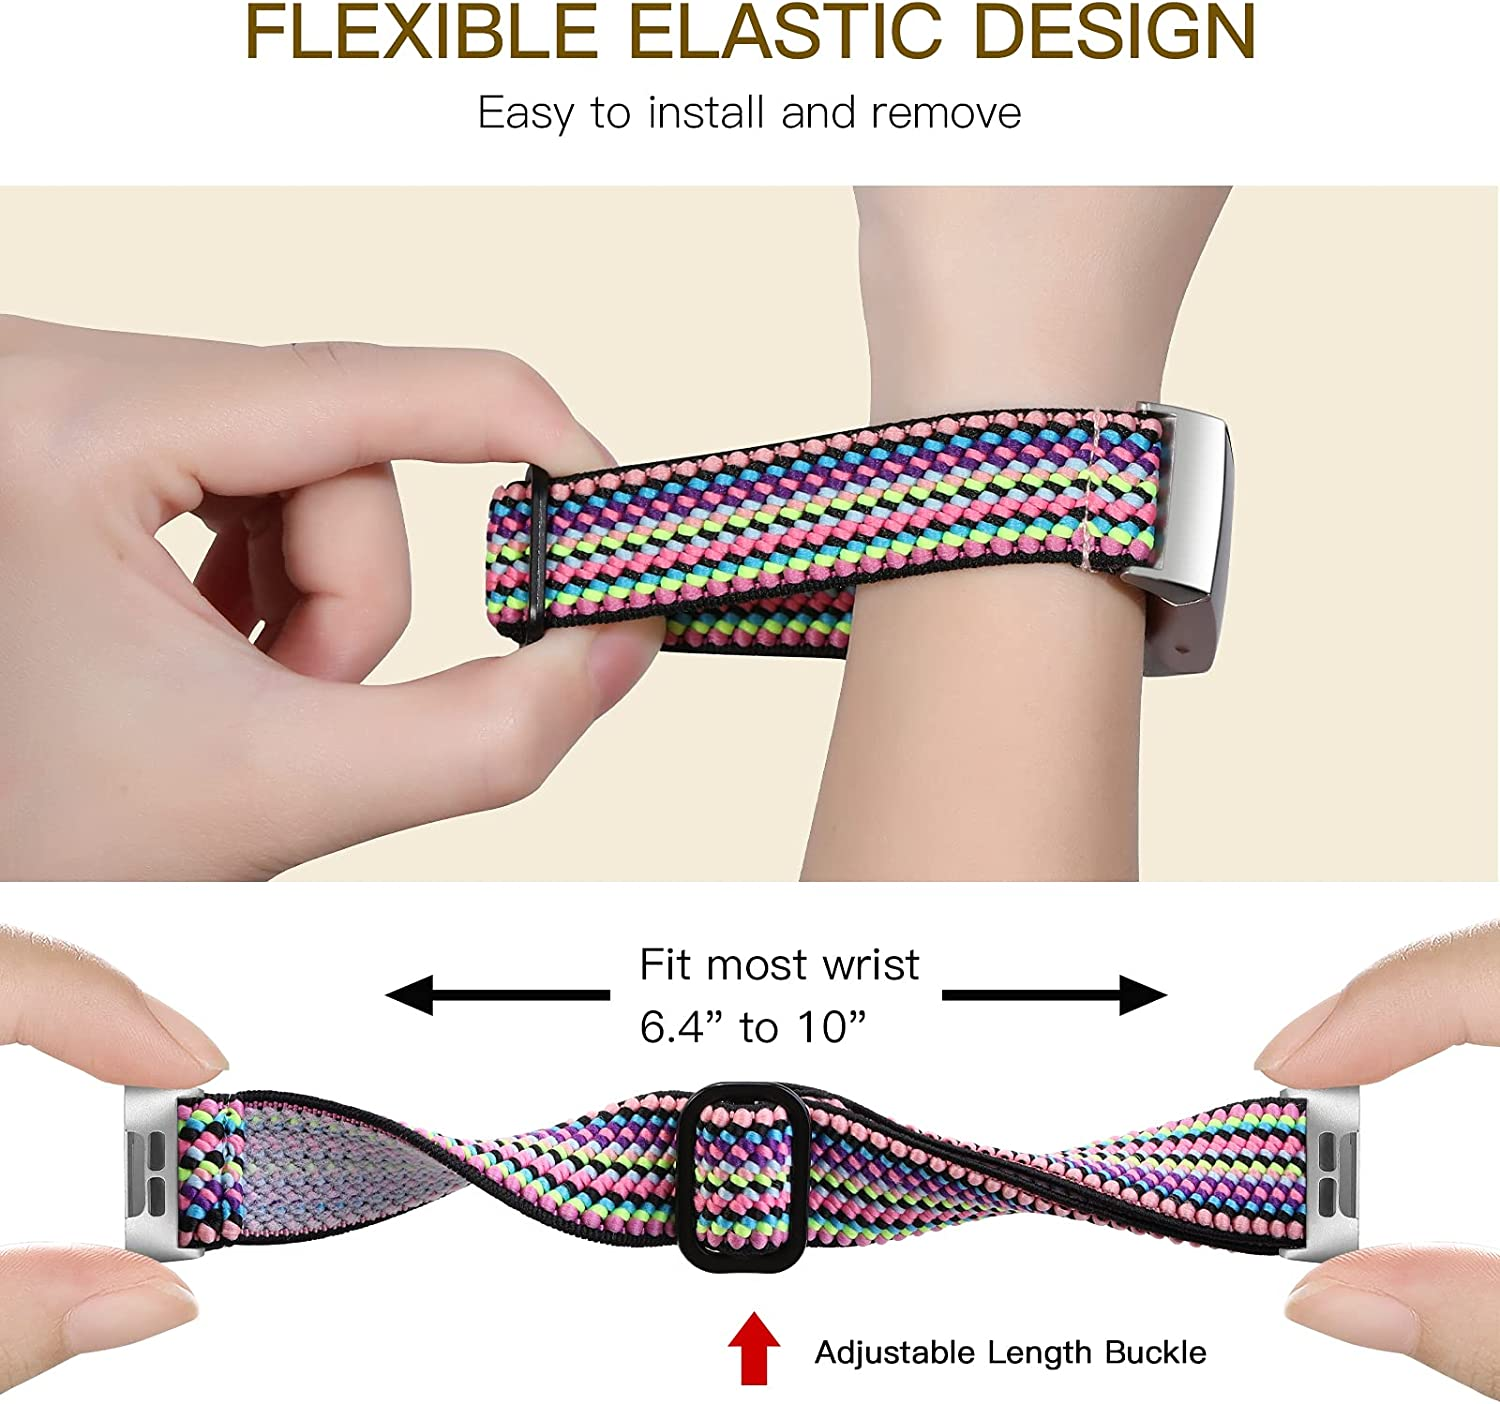 GEAK Stretchy Band for Fitbit Charge 4/Fitbit Charge 3 Bands, Adjustable Elastic Breathable Nylon Replacement Strap for Fitbit Charge 3/3SE/Charge 4 Bands Women Men Colorful Rope/Brown Leopard